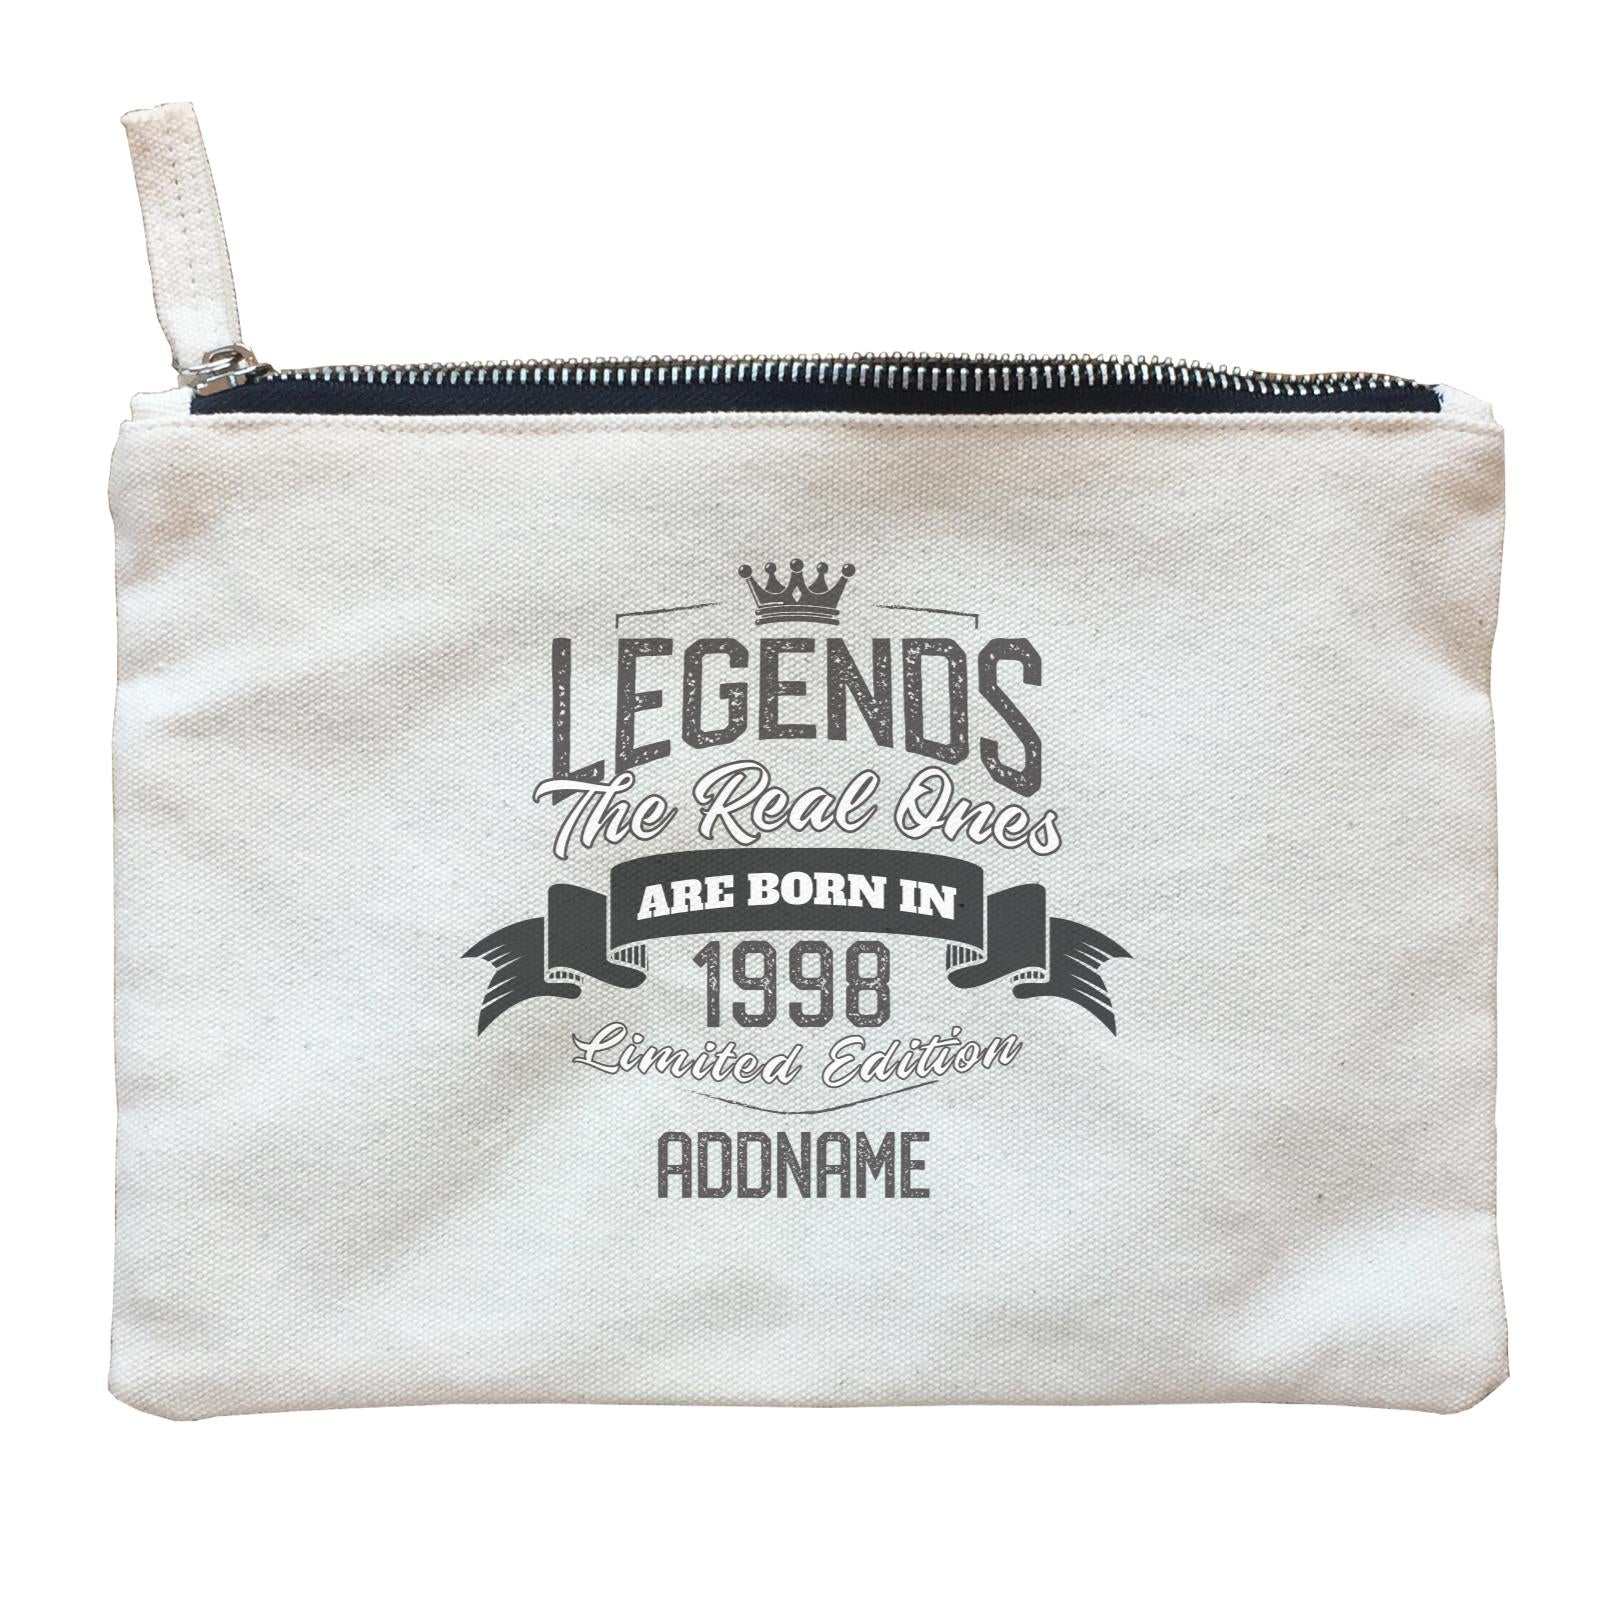 Personalize It Birthyear Legends The Real Ones Are Born In Limited Edition with Addname and Add Year Zipper Pouch